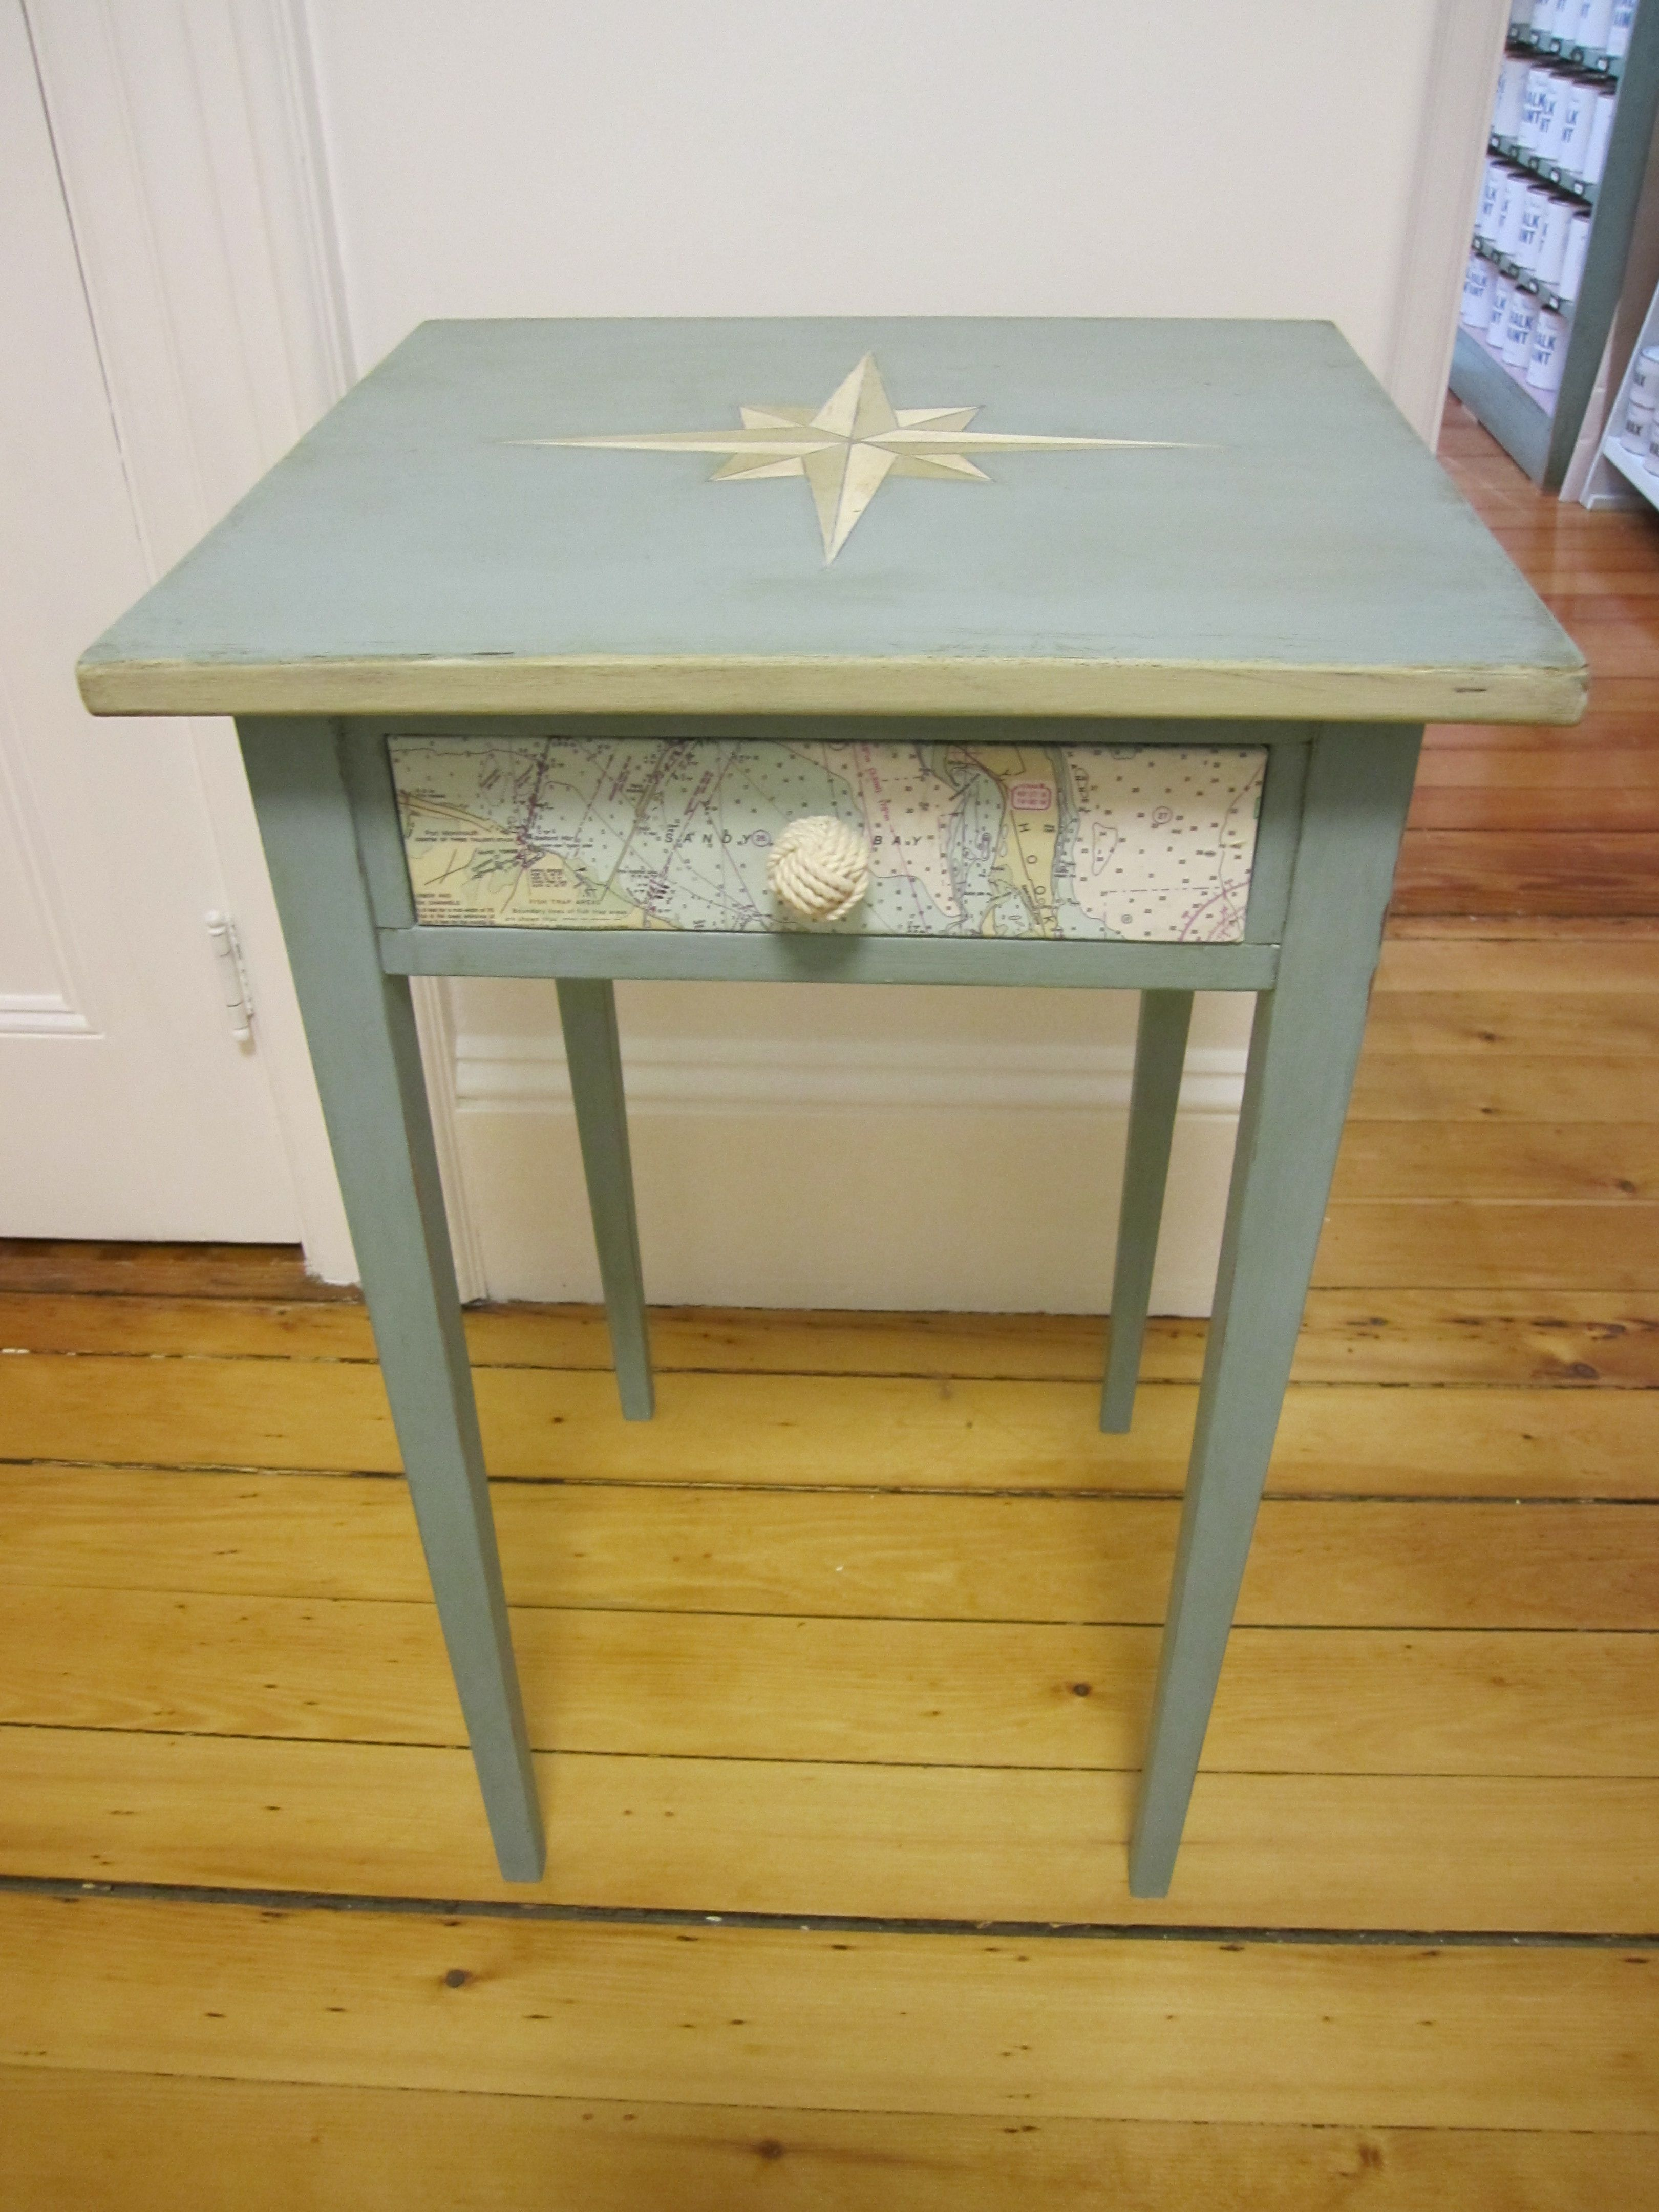 Nancy Of Sea Rose Cottage Amps Up A Simple Table W Nautical Map Compass Design On Top Monkey Fist Knot Pull Nautical Furniture Nautical Table Table Makeover